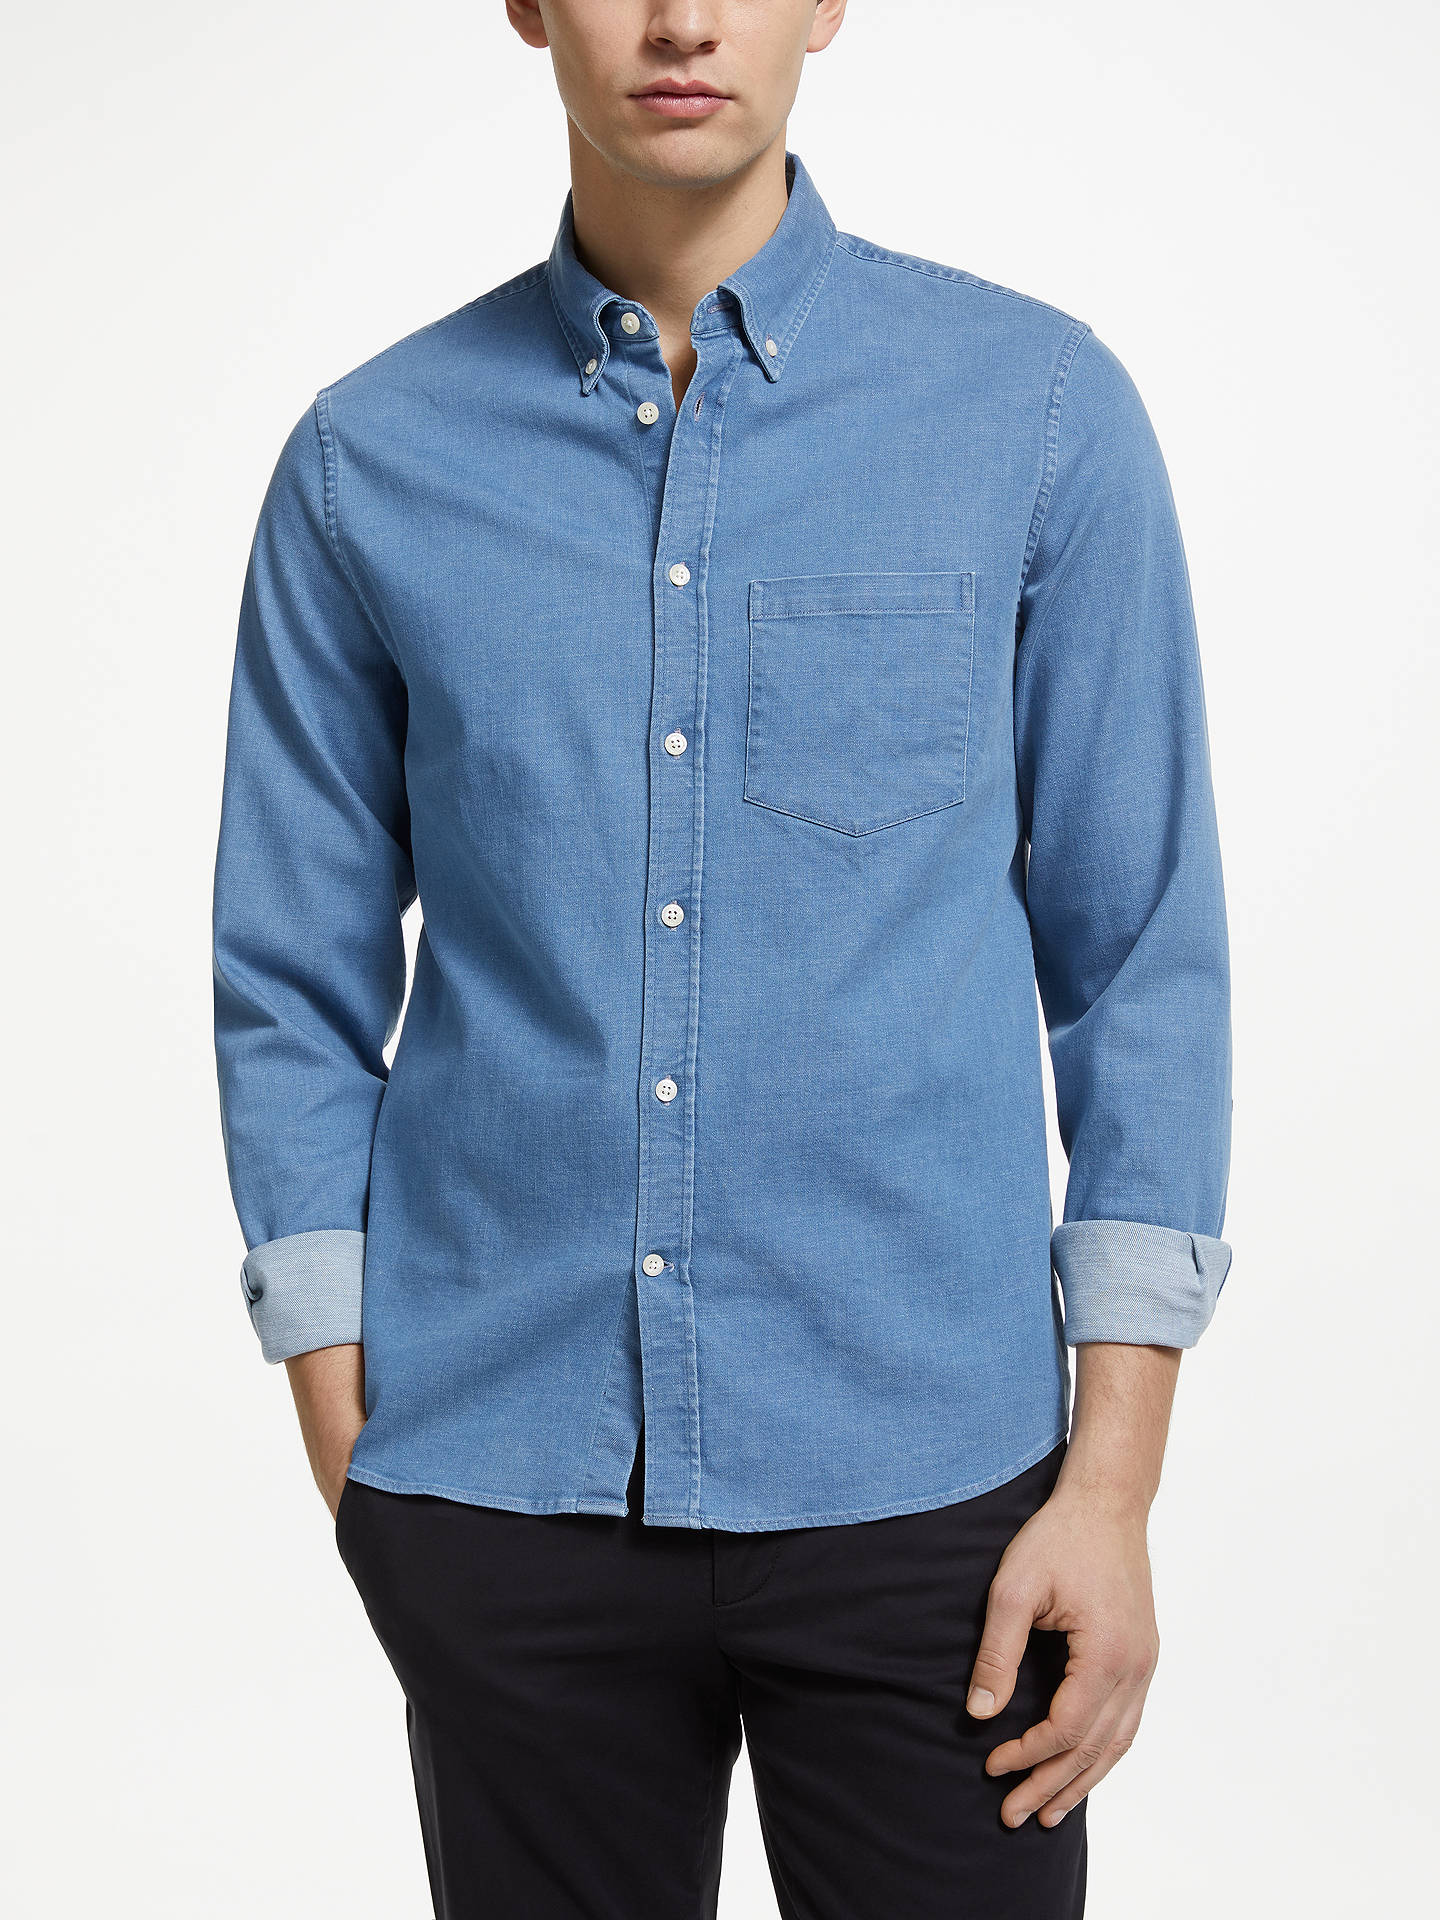 4119120e7d4afb Buy J.Lindeberg Denim Shirt, Light Indigo, S Online at johnlewis.com ...